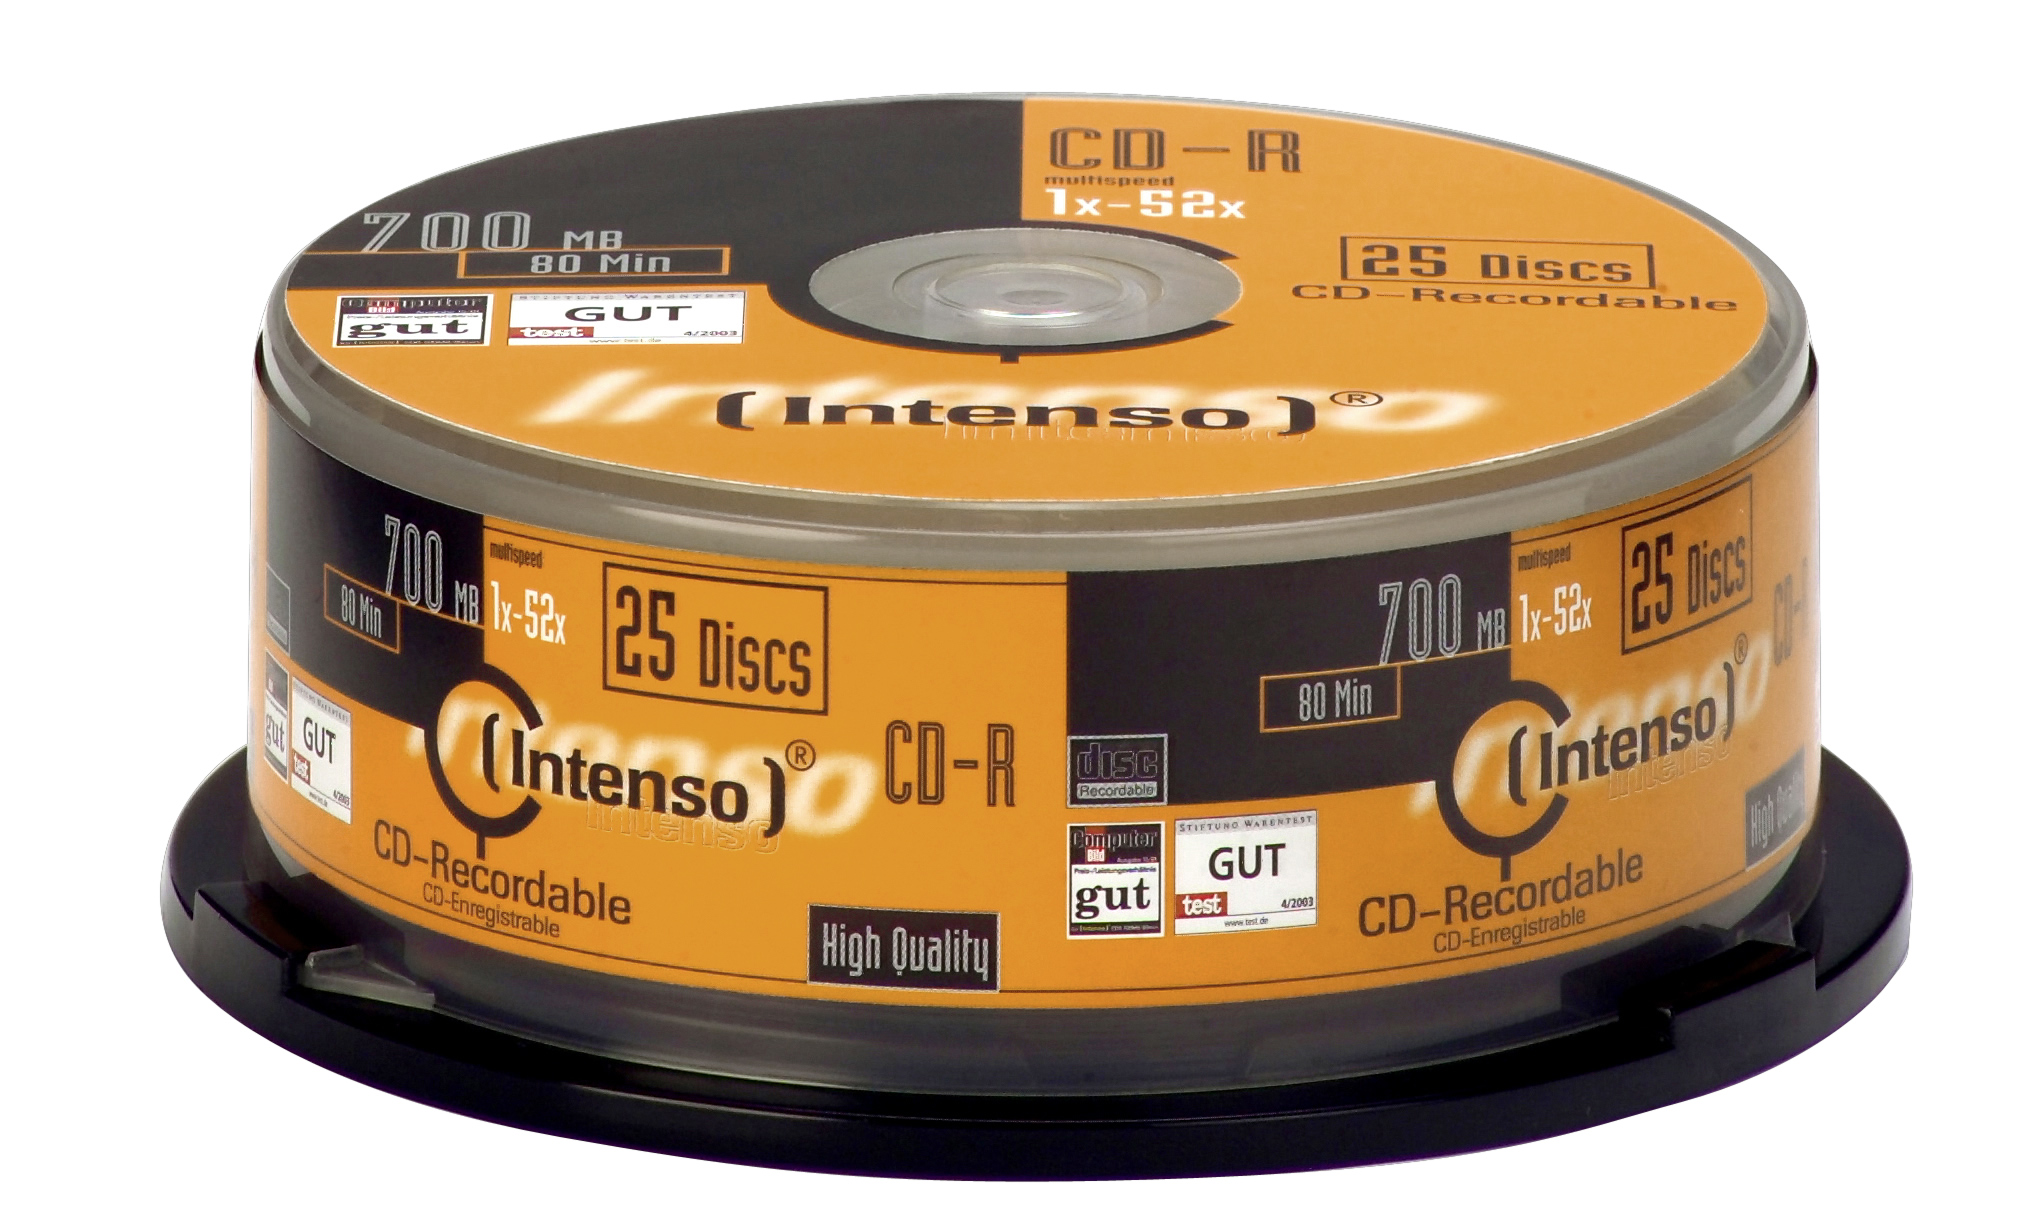 1x25 Intenso CD-R 80 / 700MB 52x Speed, Cakebox Spindle